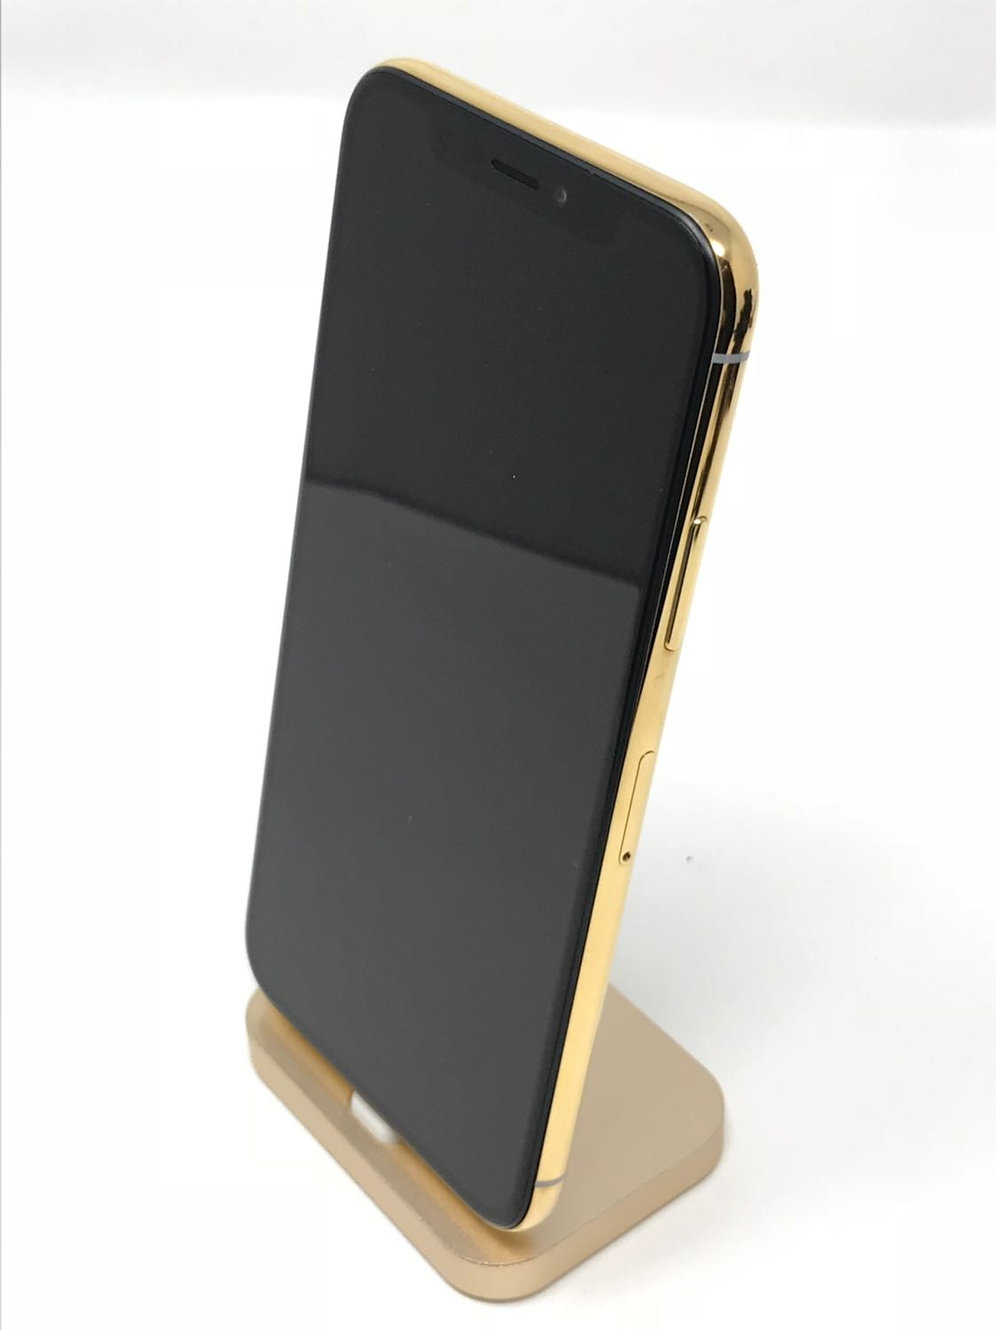 Iphone X, Unlocked, 256GB, 24K Gold Plated